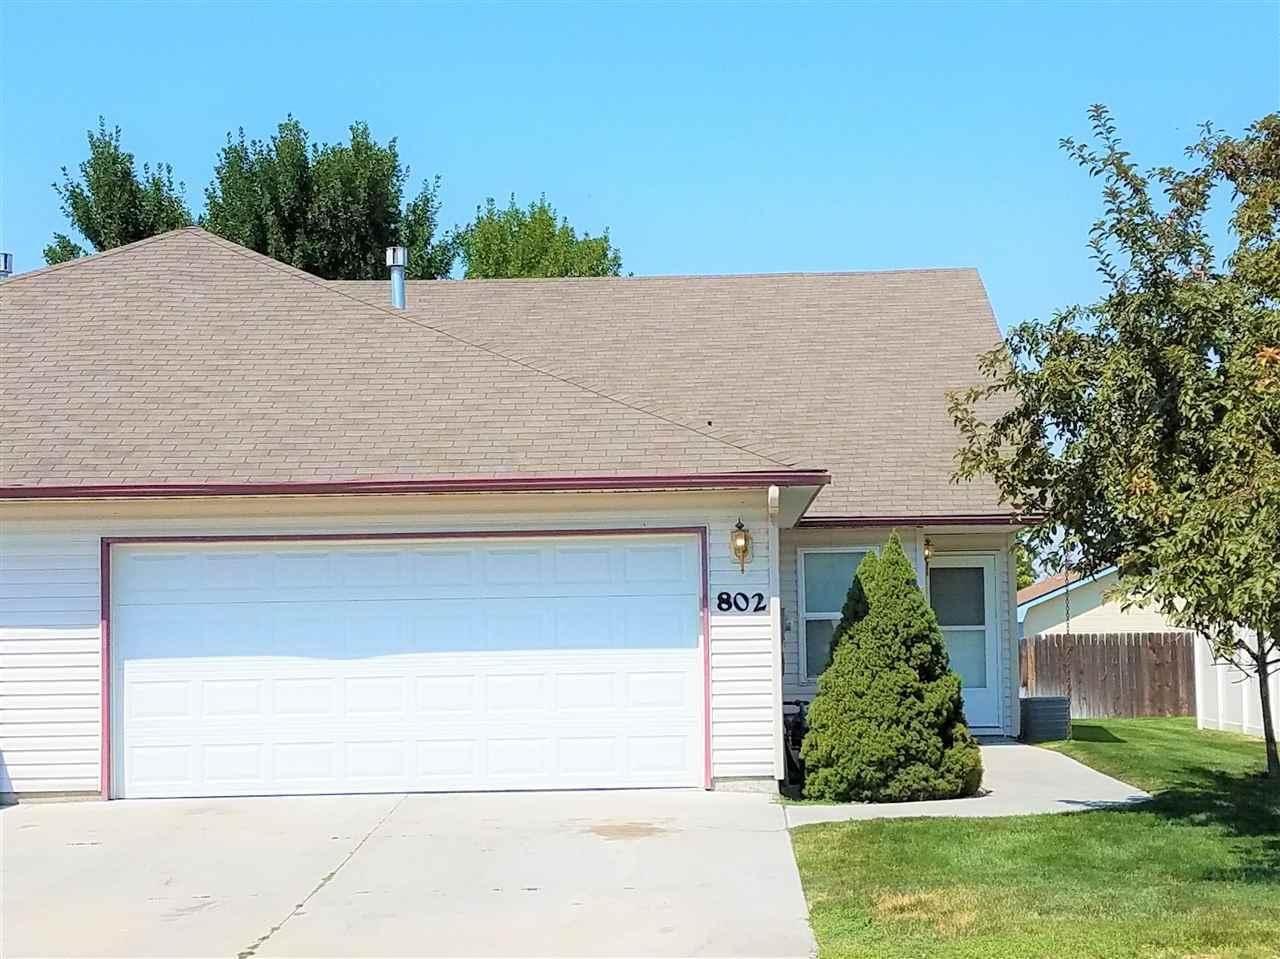 802 E Maine Ave Nampa Id Mls 98665253 Better Homes